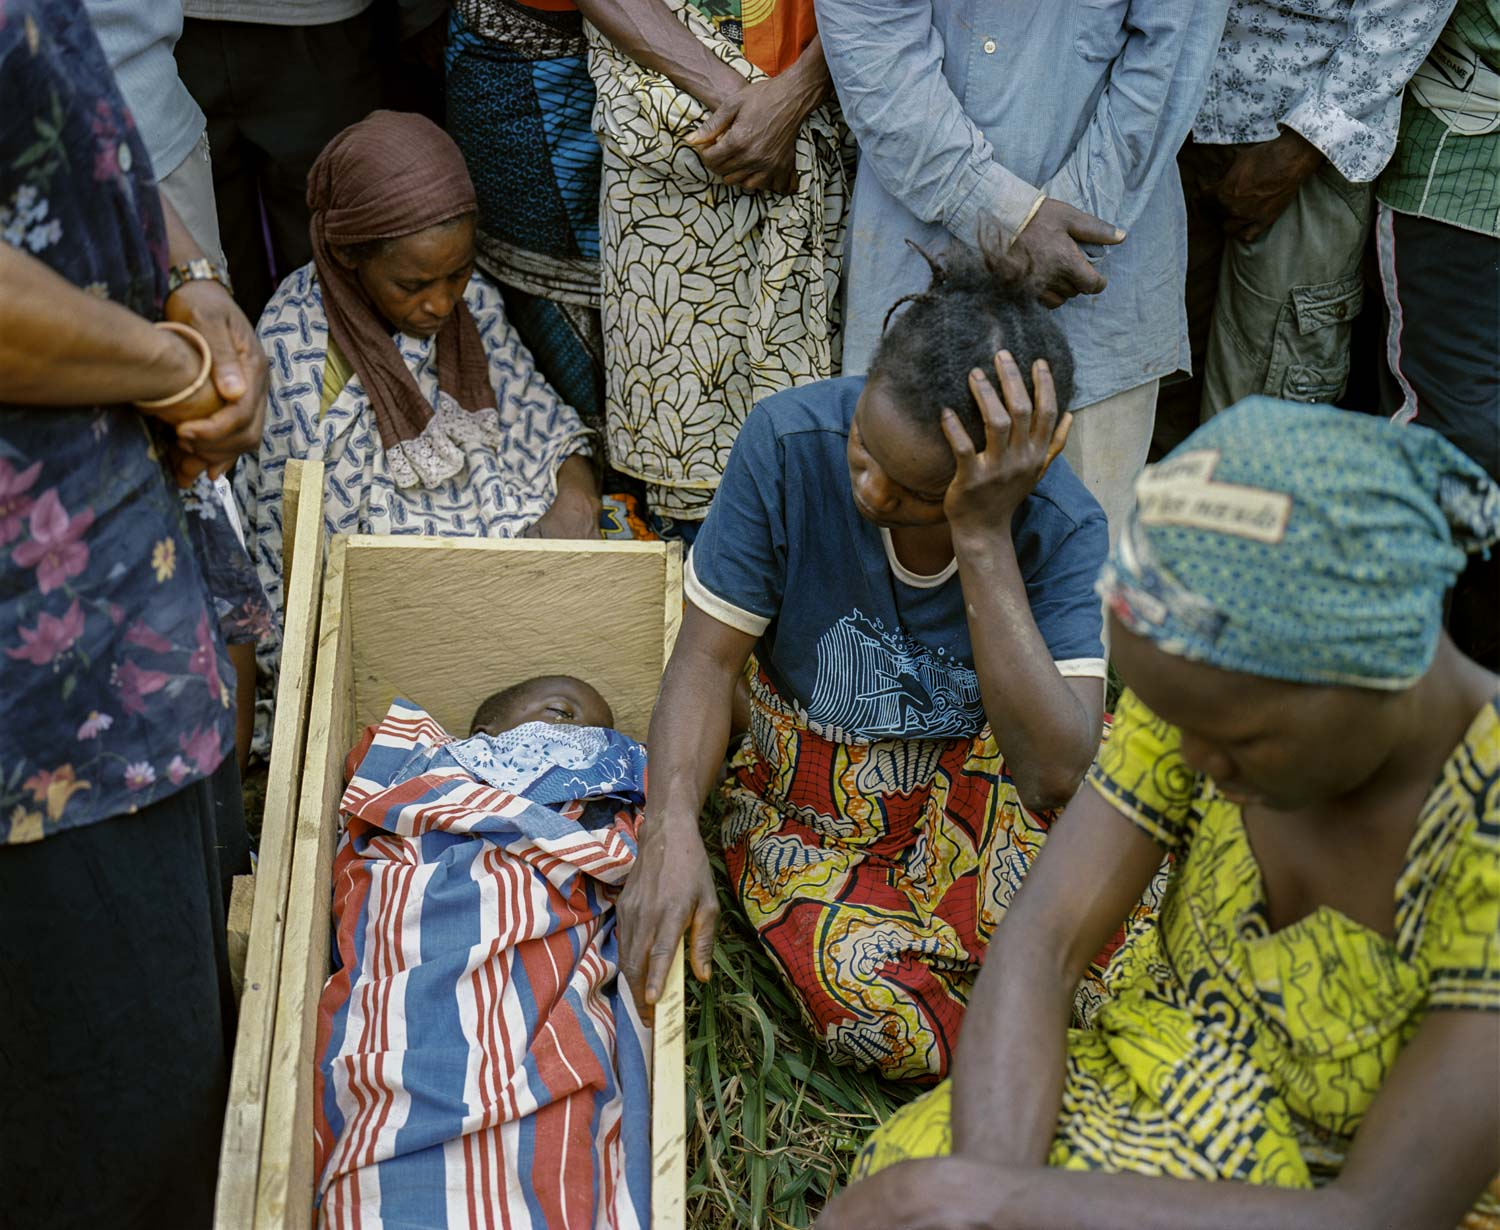 Villagers and family members mourn at the funeral of his murdered 7-year old son, Damas. The belief in sorcery includes a dogma that a rope used to commit suicide has inherent powers; the rope can be sold in markets in Burundi and Tanzania for thousands of dollars to believers that claim it will give them black magic powers. Damas' murder was staged to appears a suicide by hanging. Jan. 18, 2014. Lulingu, South Kivu, Democratic Republic of the Congo.